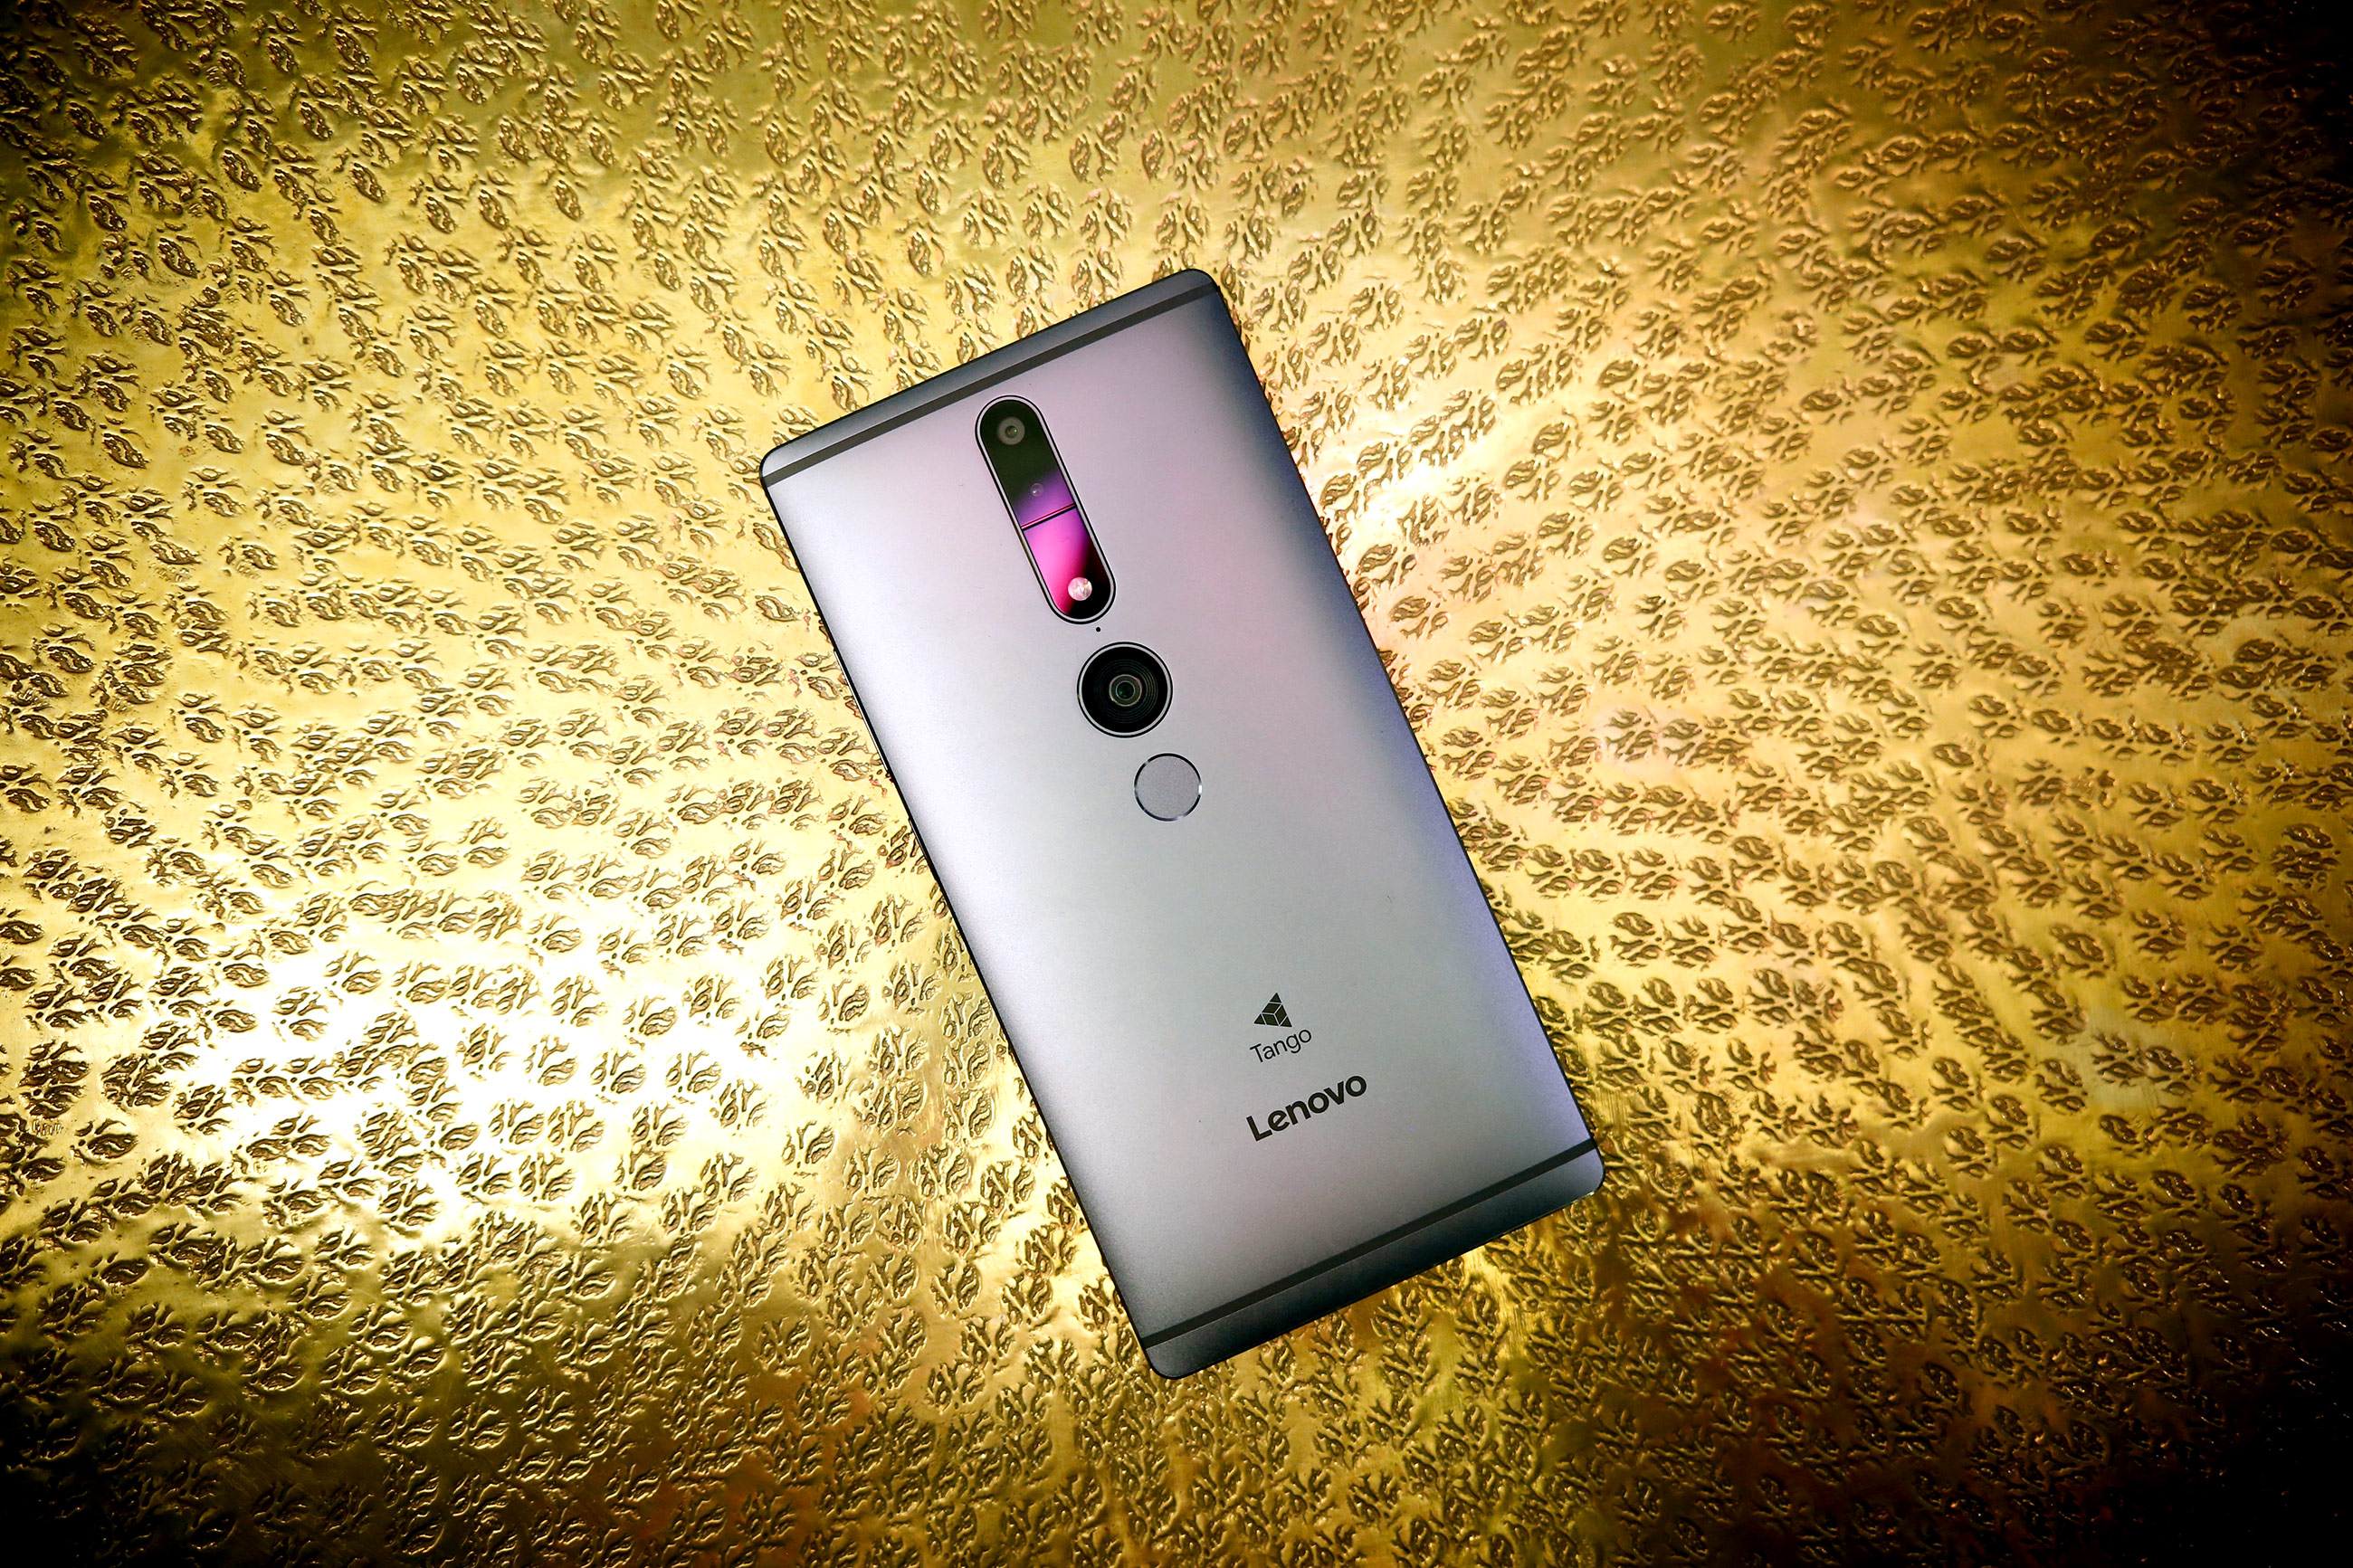 Lenovo Phab 2 Pro review: Stumbling out of the gate